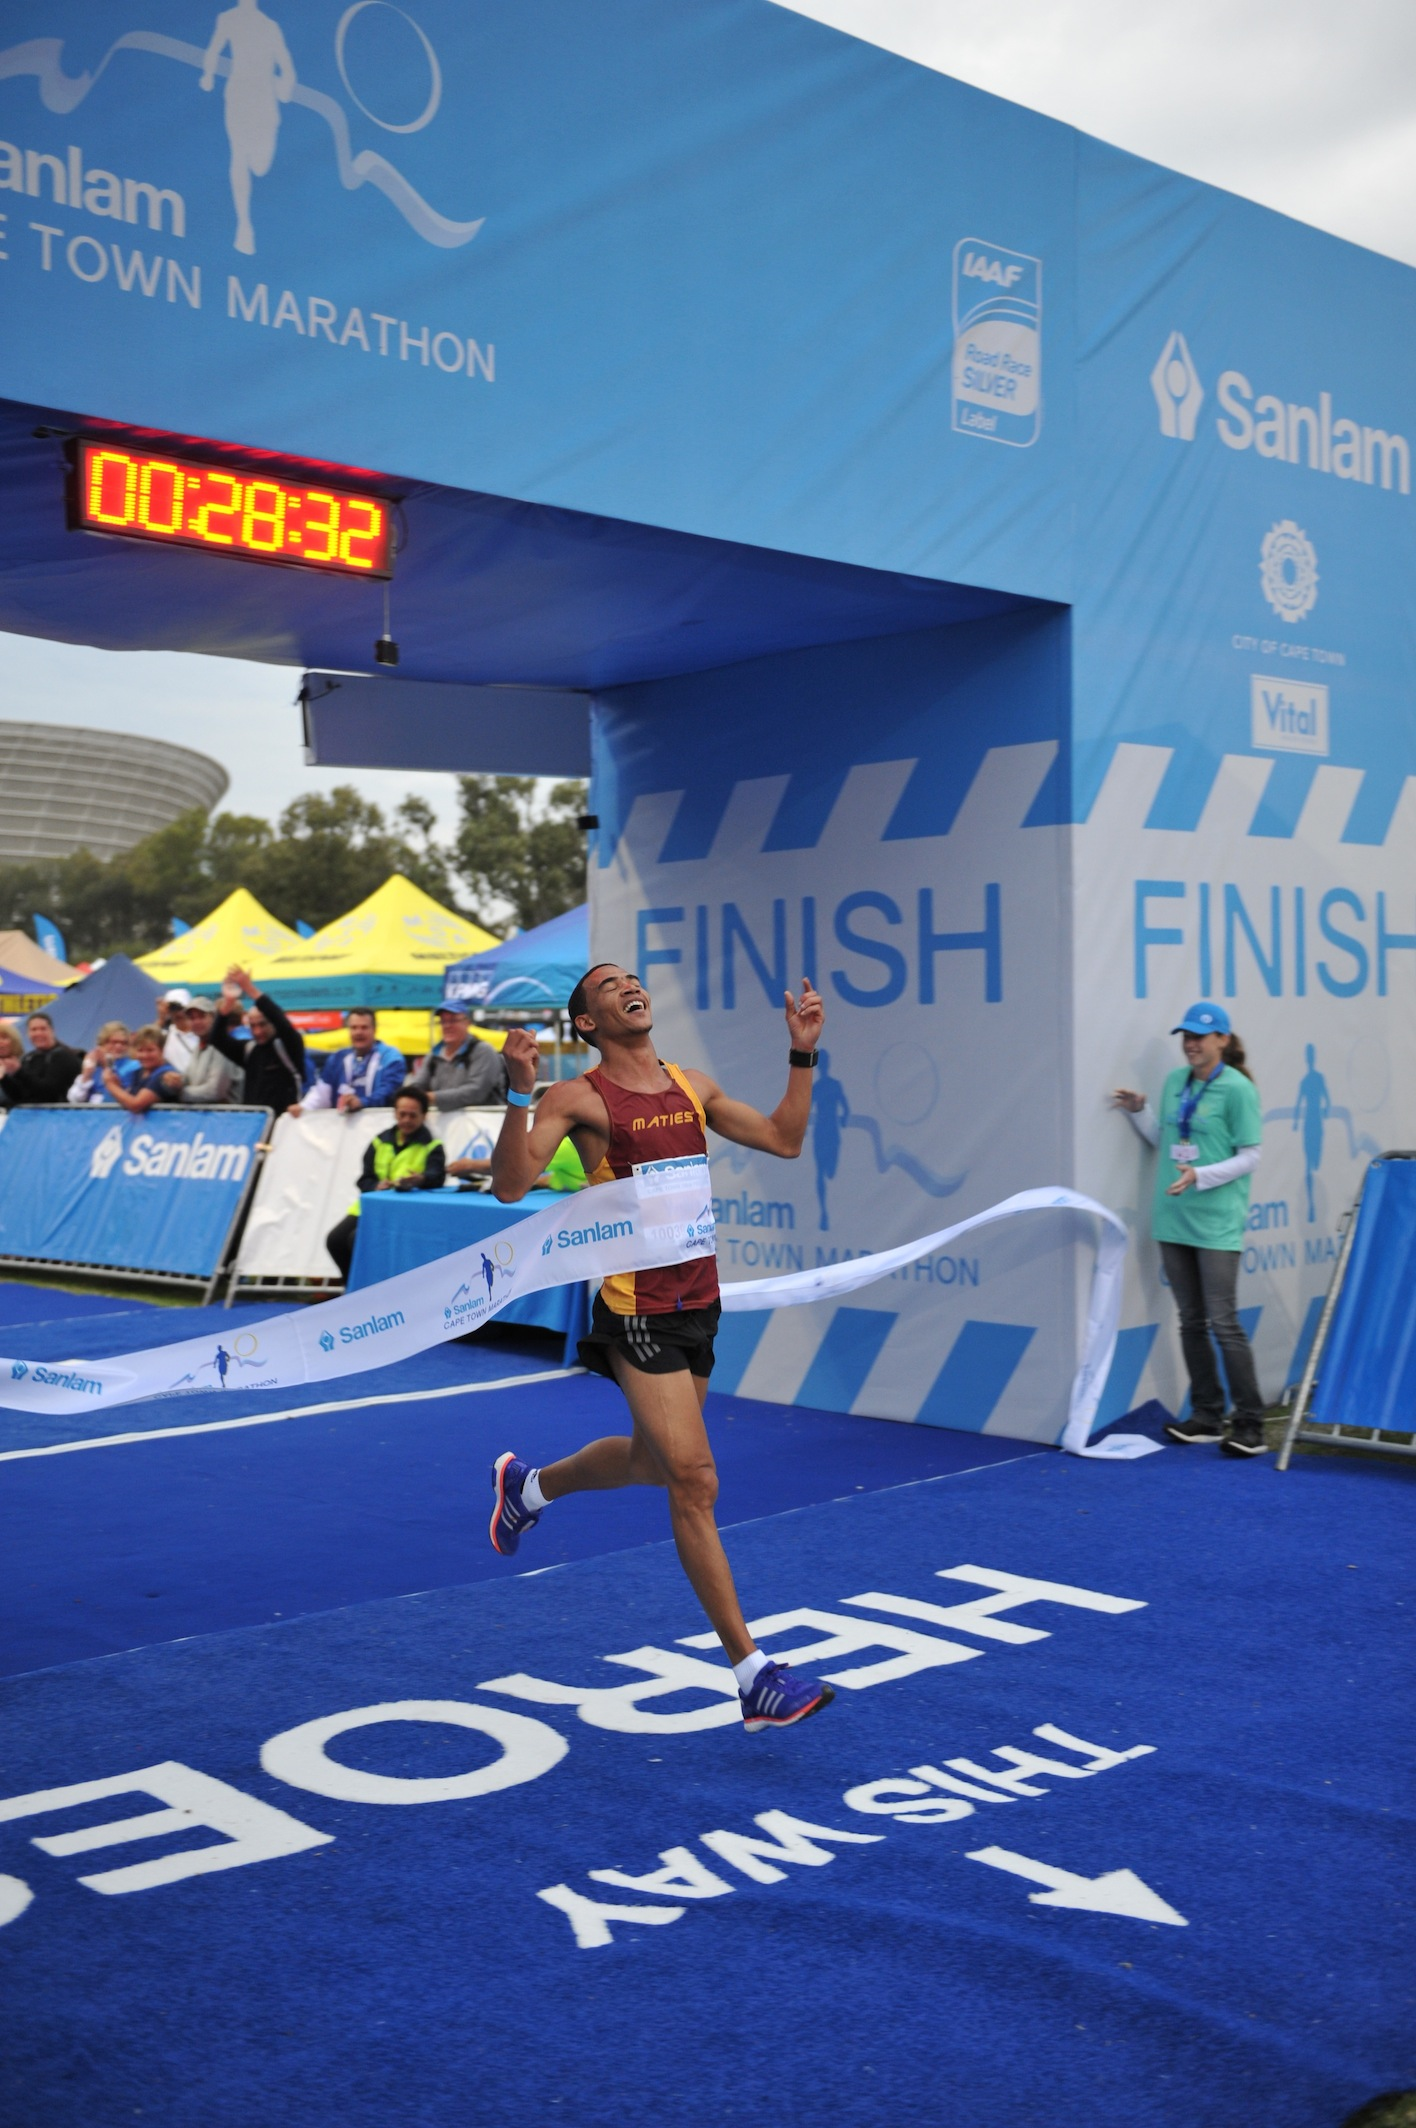 William Kaptein and Lebo Dinah Phalula outclassed a quality field to win the men's and women's titles in the Sanlam Cape Town Marathon Peace 10km run/walk this morning.